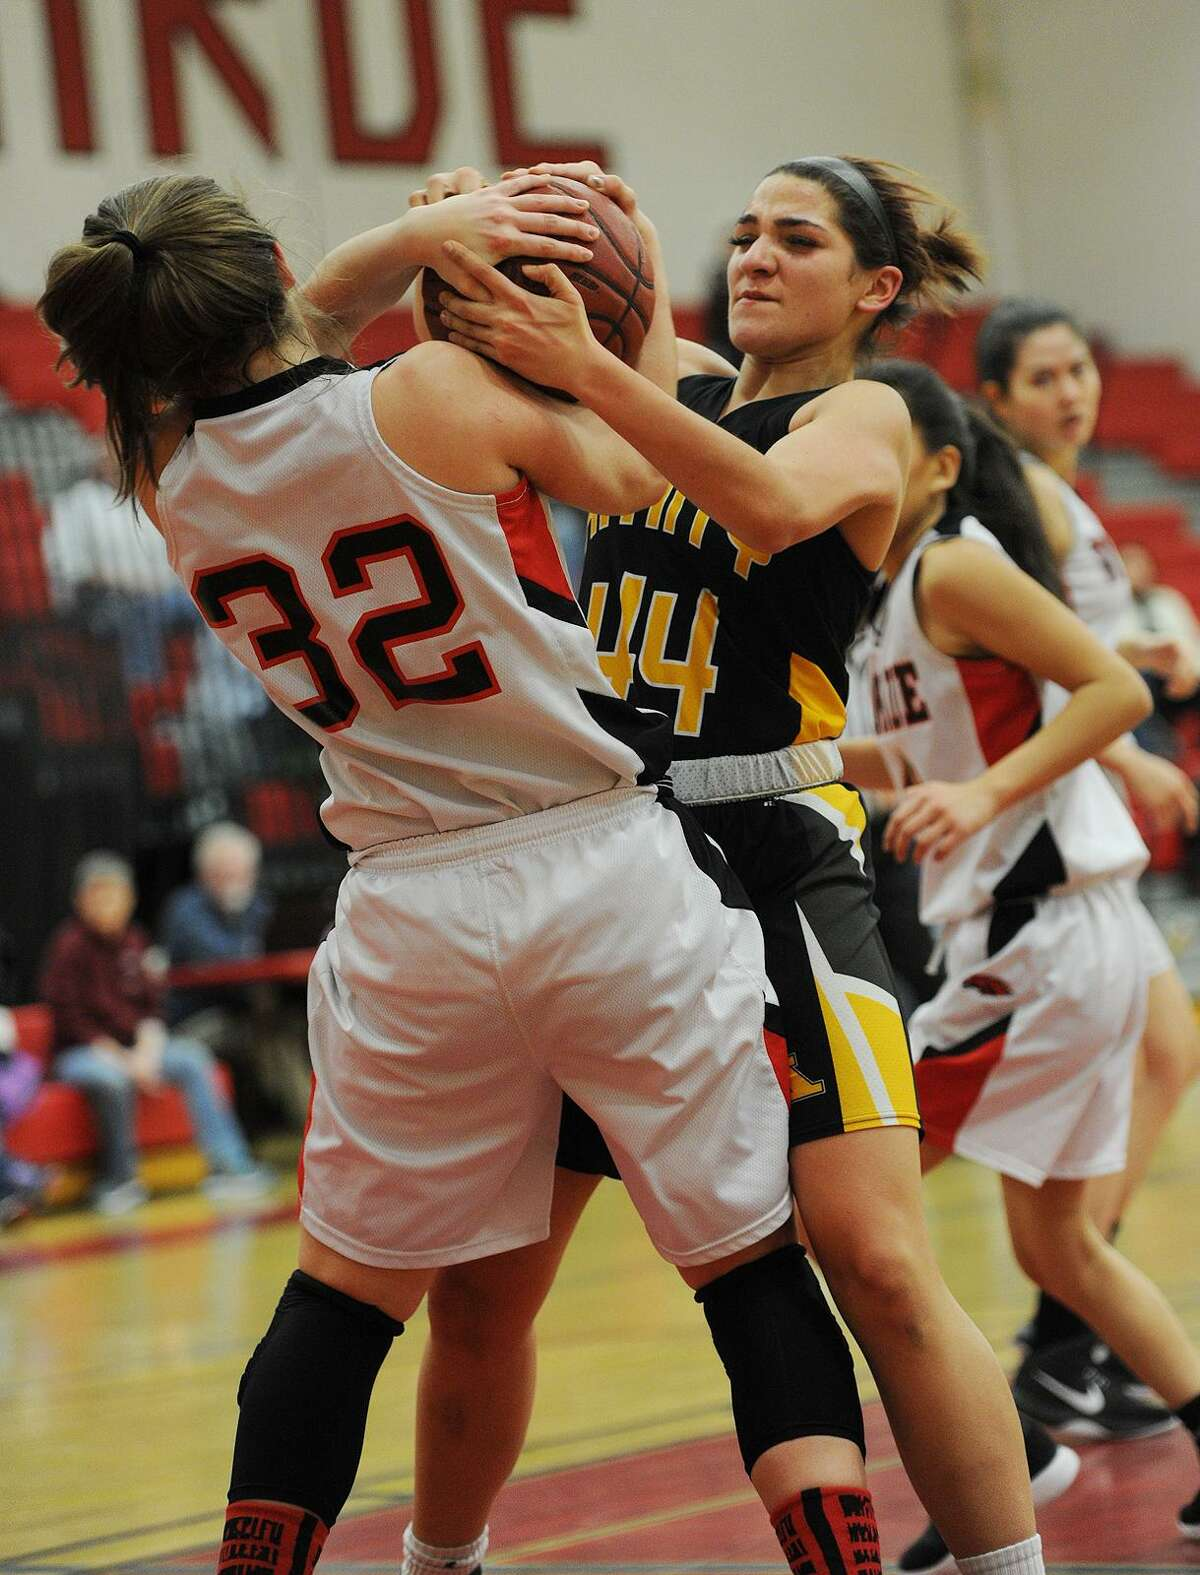 Warde's Olivia Parisi, left, battles for a rebound with Amity's Hayley Esparo in the first half of Monday night's game at Warde High School in Fairfield.